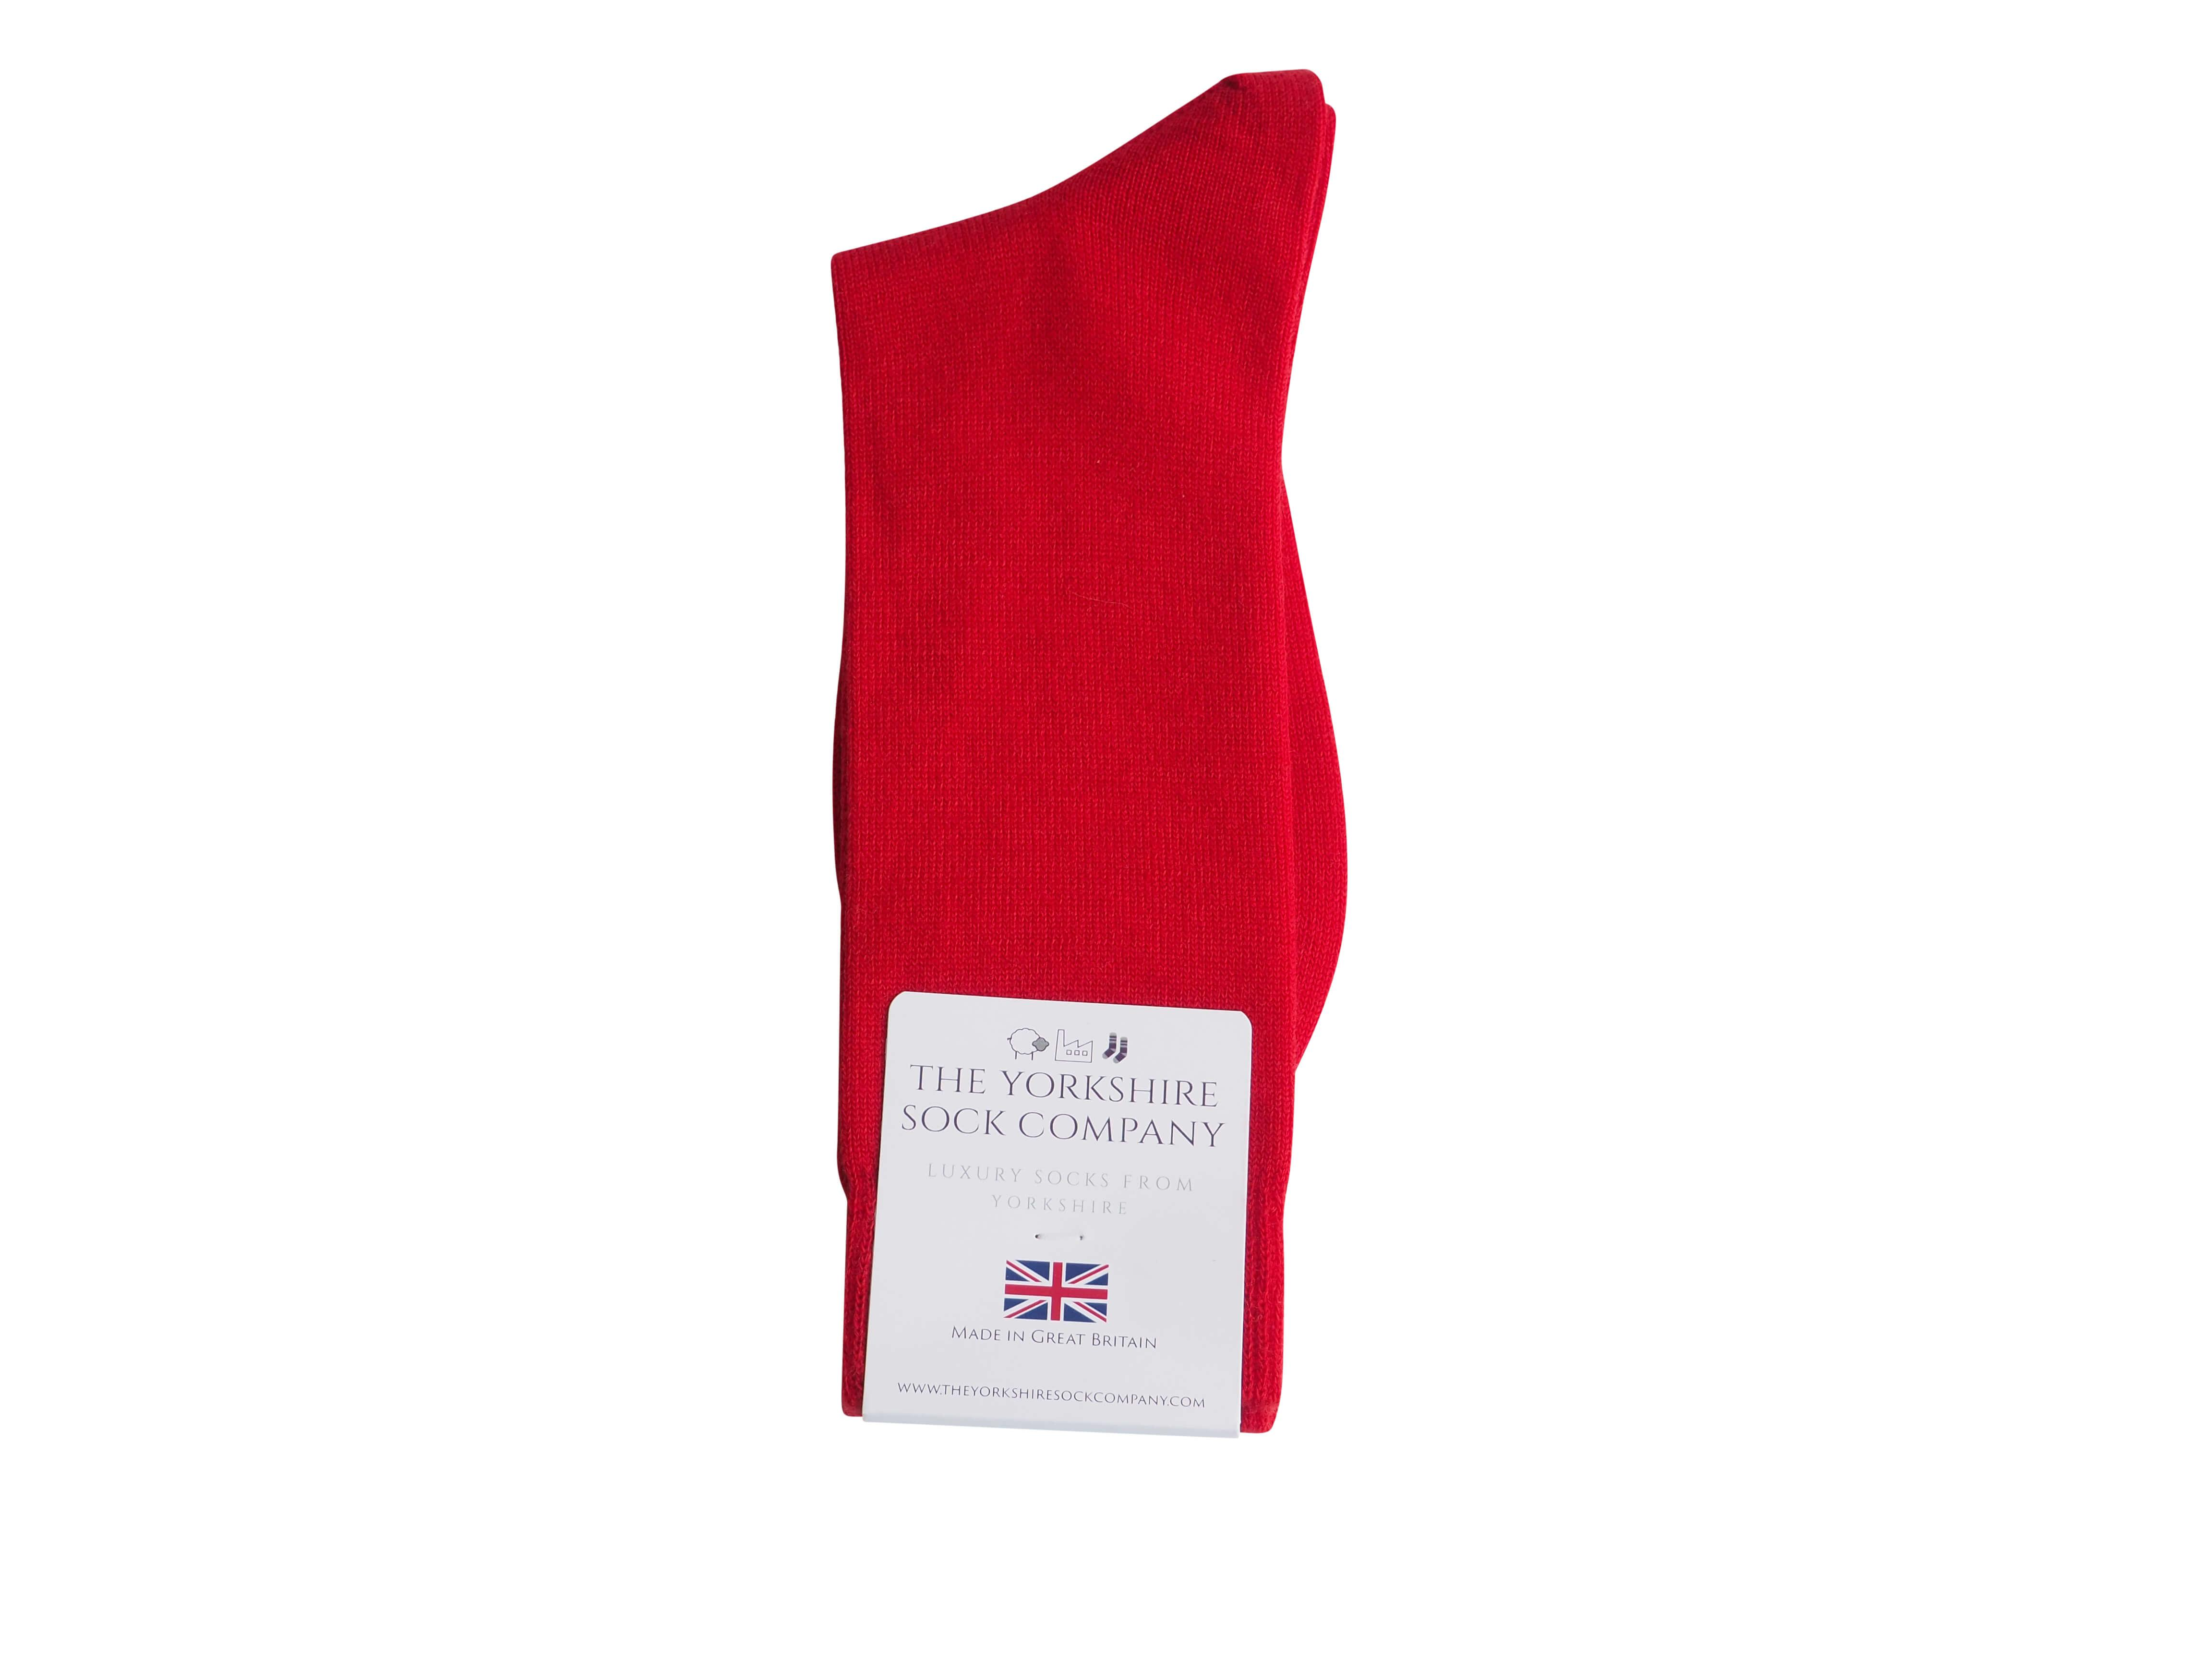 natural-merino-wool-yorkshire-socks-red-packed